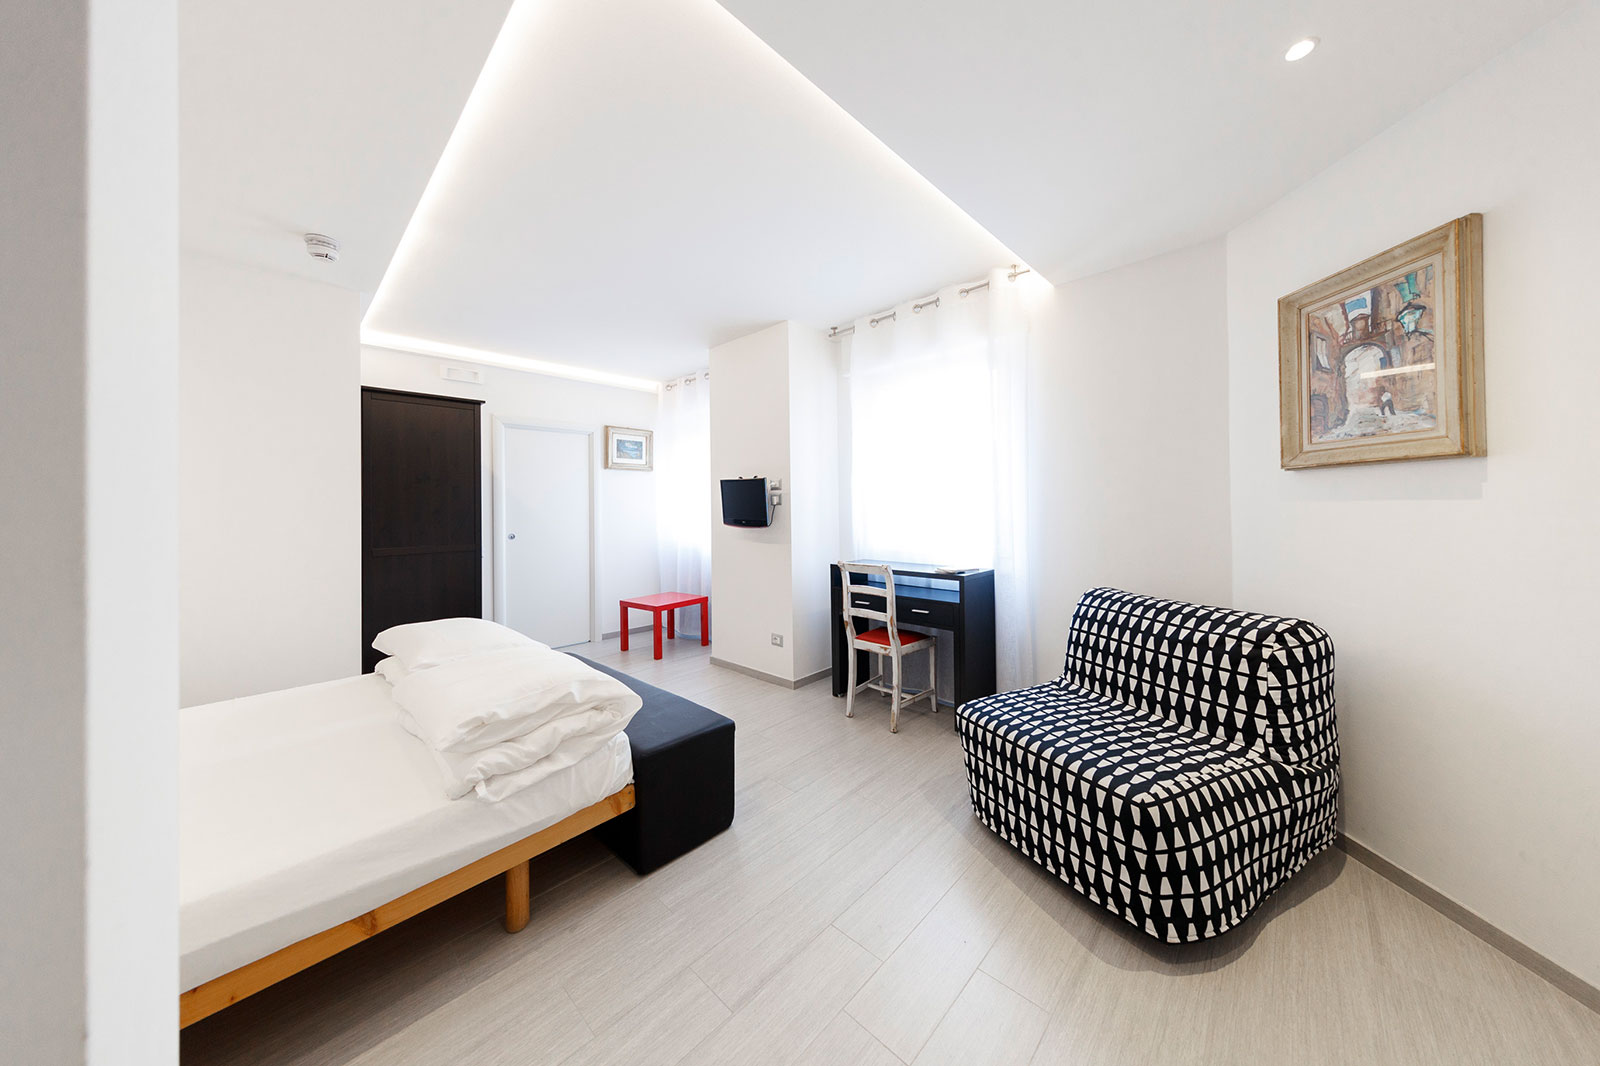 Camere Hotel SoleHoliday - Arco - Trento